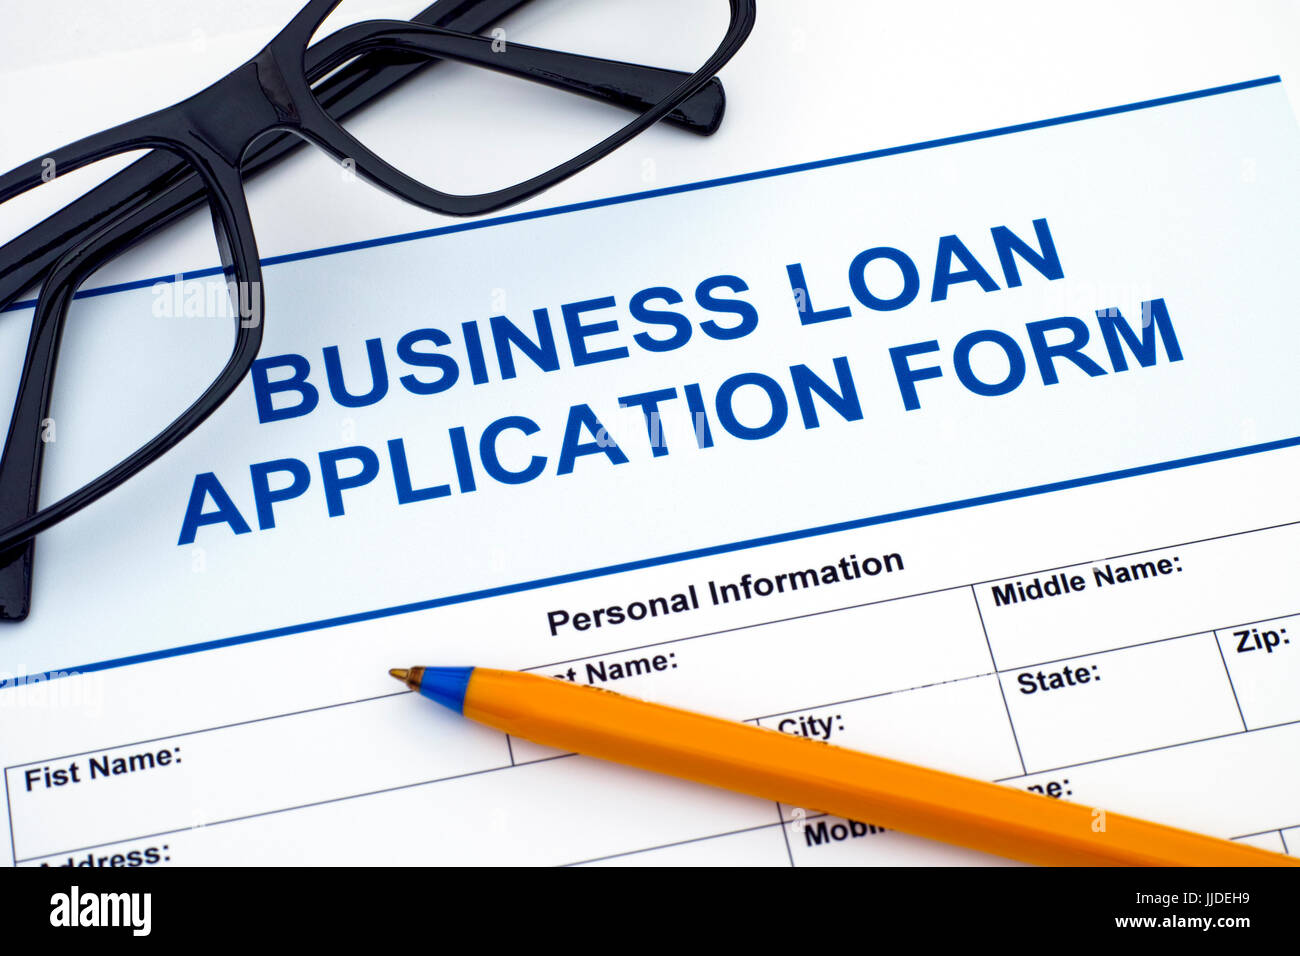 Business Loan Application Form with ballpoint pen and glasses. - Stock Image